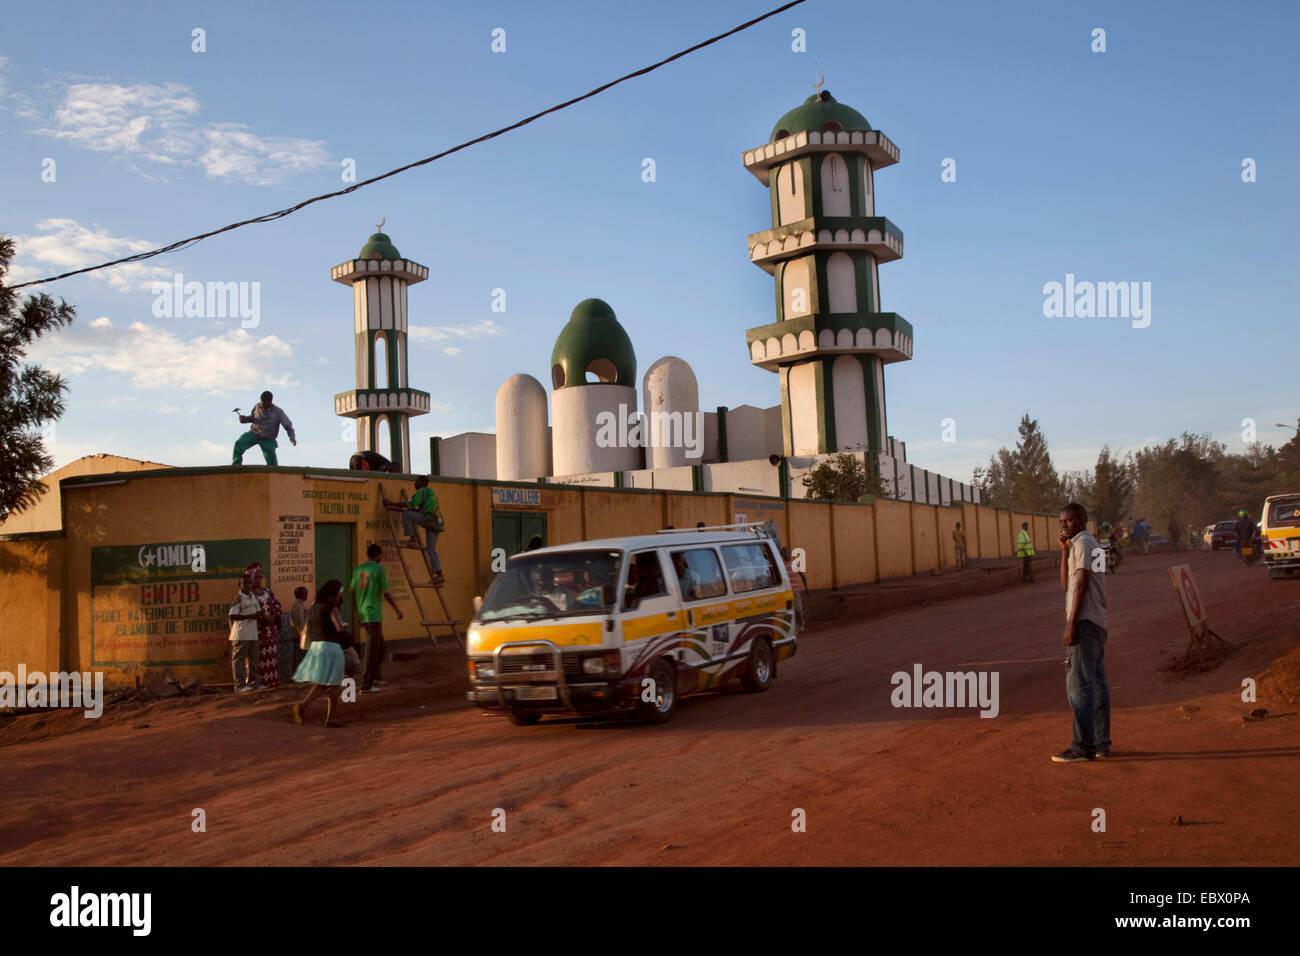 Mosque (the bigges) of Nyamirambo, an area of Kigali where a larger number of Muslims live, repair works are being - Stock Image